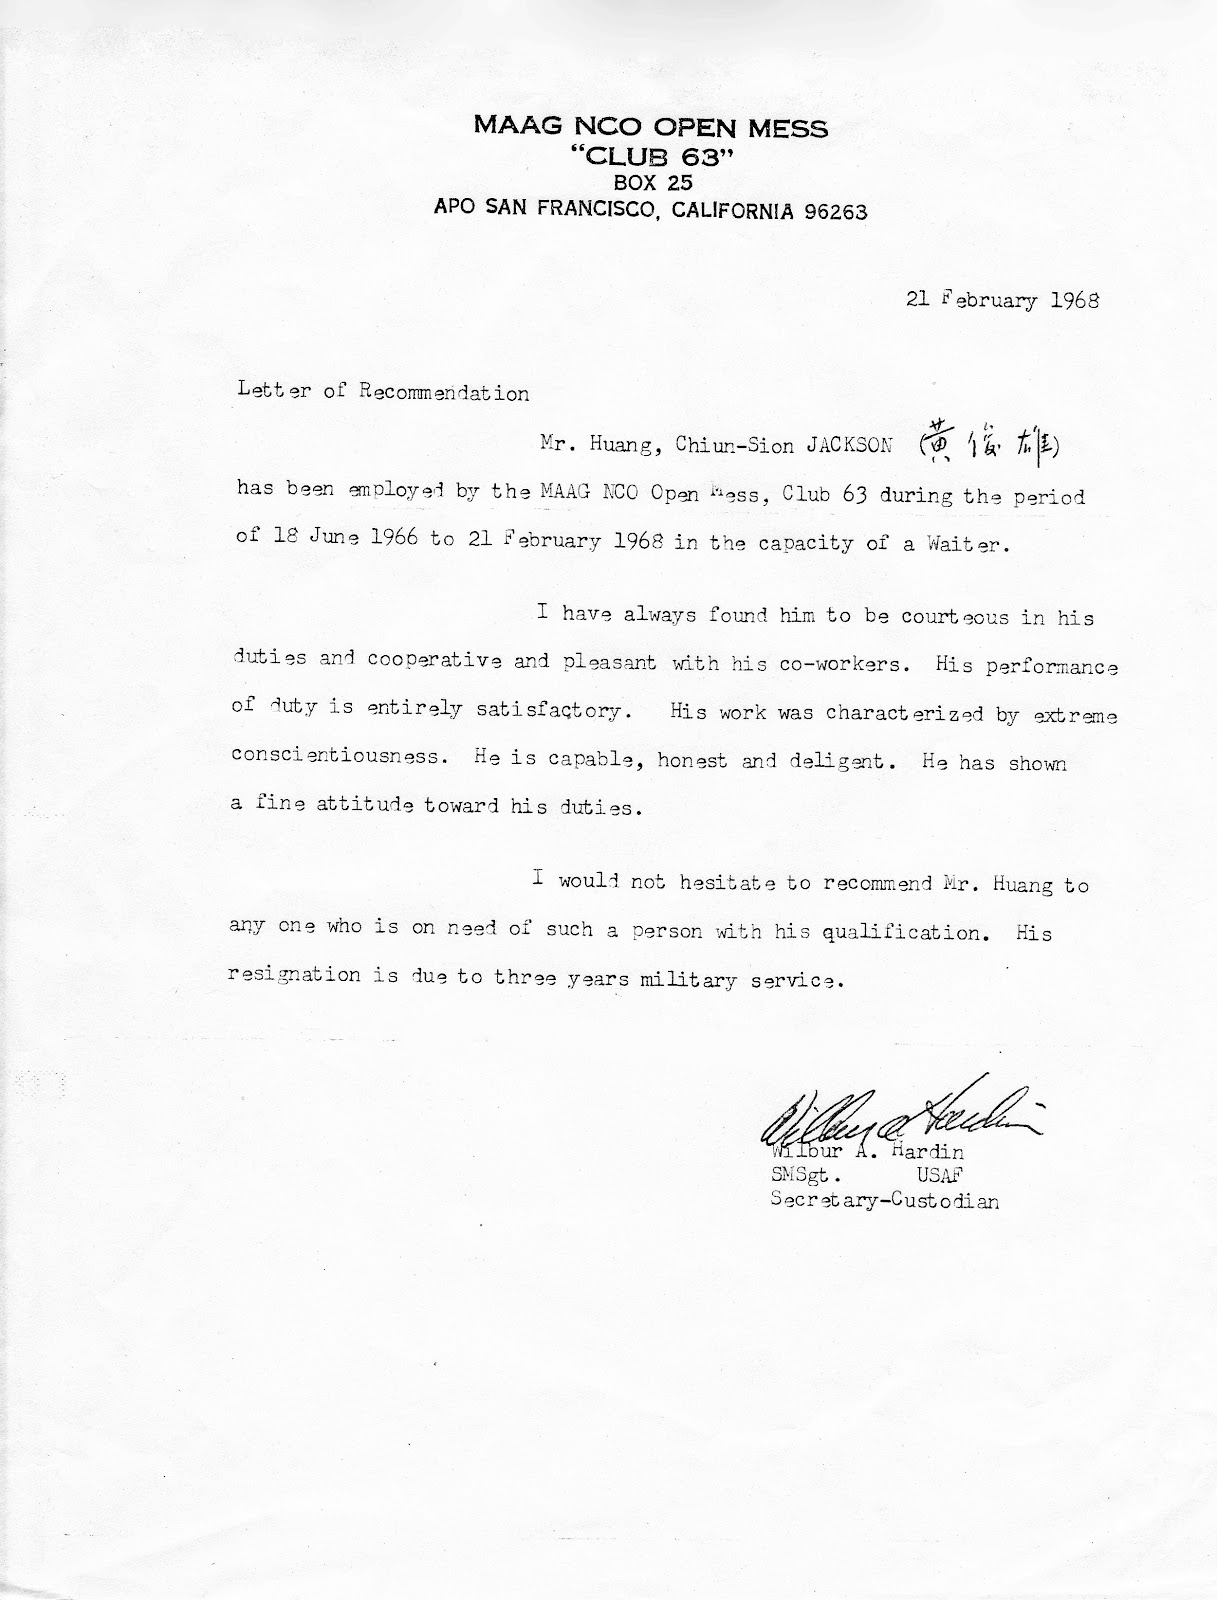 taipei air station 2012 as mr huang left club 63 for mandatory military service in 1968 he received this letter of recommendation from the secretary custodian